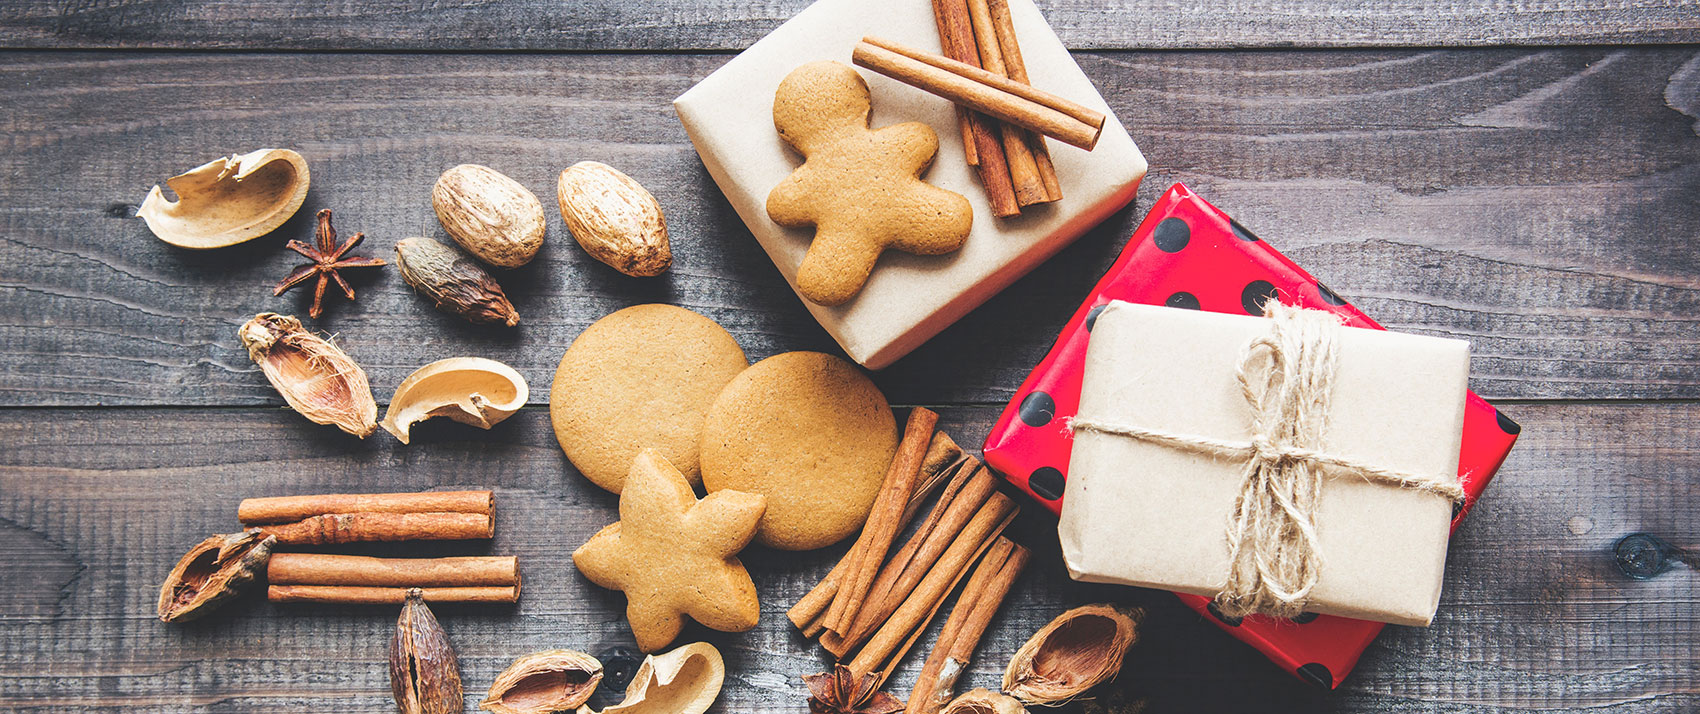 holiday cookies, spices, and gifts